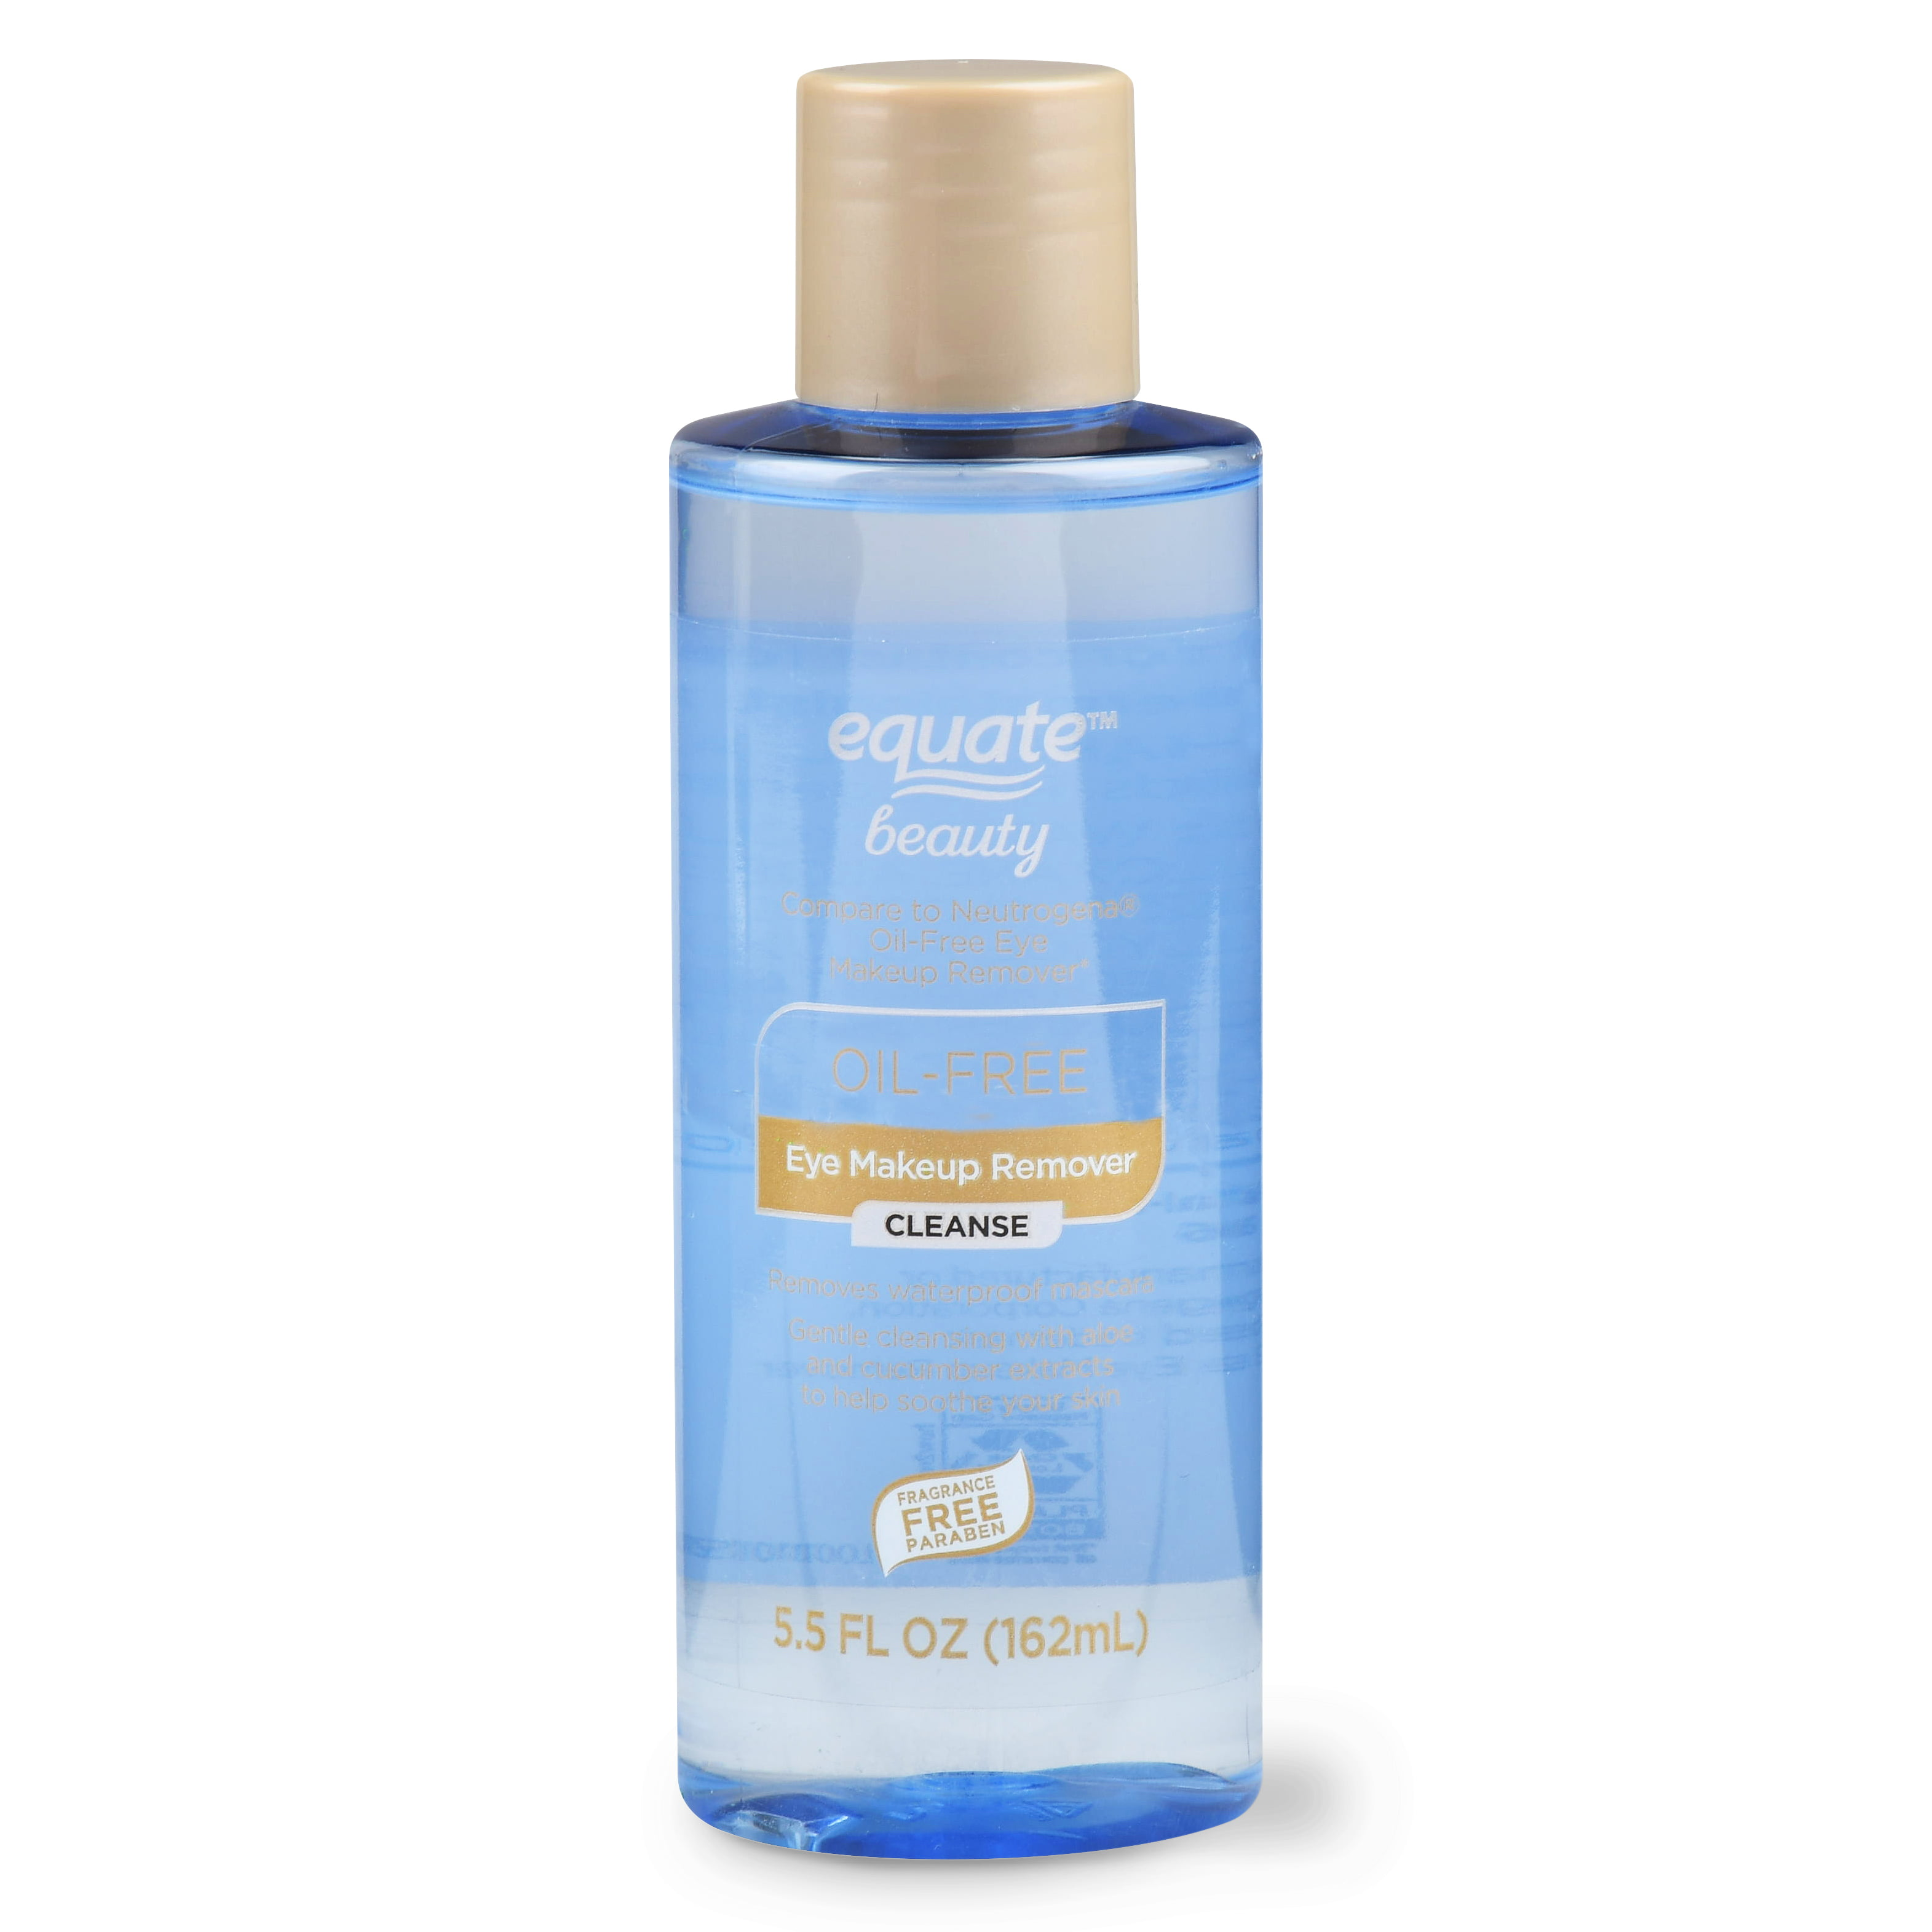 Makeup Remover - 5.5oz - Up&Up (Compare to Neutrogena Oil-Free Makeup Remover) Glo Balancing Moisture Remedy 1.7 oz